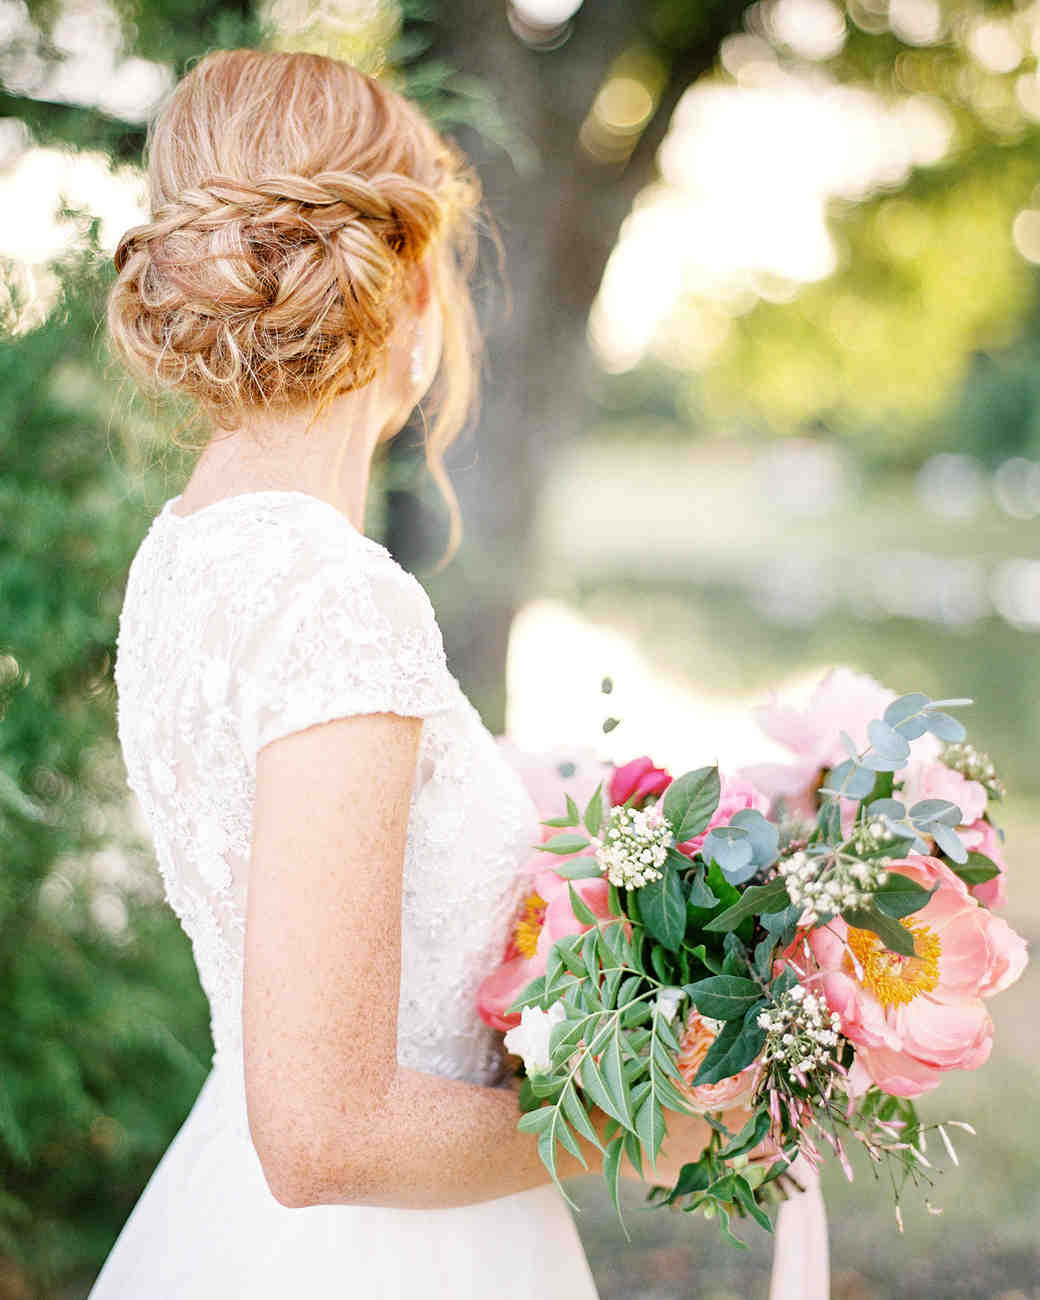 bride with braid-wrapped updo